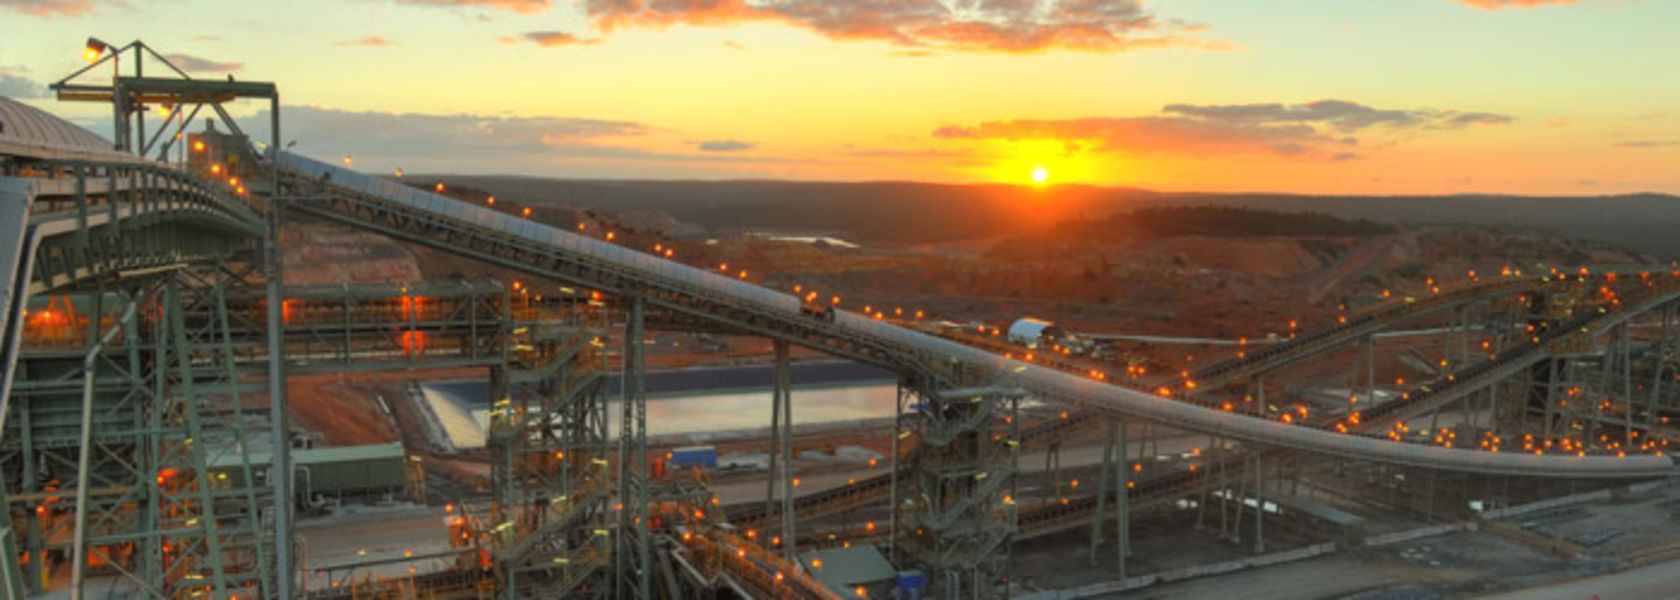 Brierty scoops Newmont contract